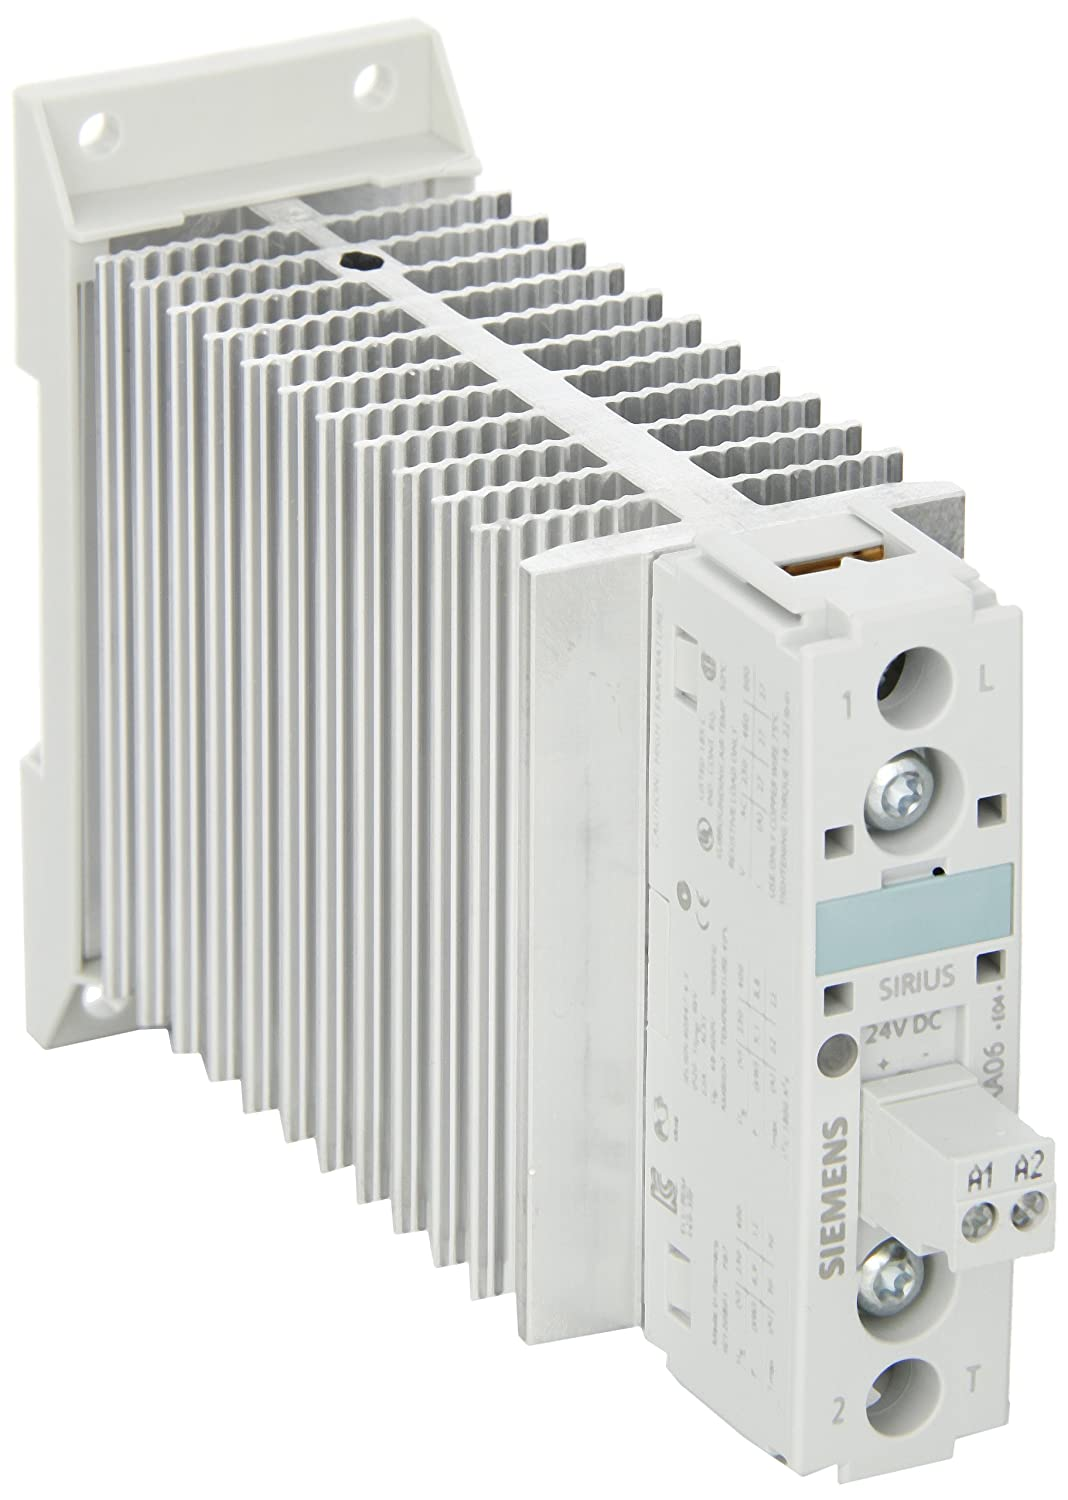 1 NO 0-600 Degrees Celsius Measuring Range 22.5mm Width Overrange Function Typ J Thermocouple Sensor 2 Threshold Values Analog Setting 24-240VAC//VDC Control Sup Screw Terminal Siemens 3RS11 20-1DW30 Temperature Monitoring Relay 1 CO Contact Type